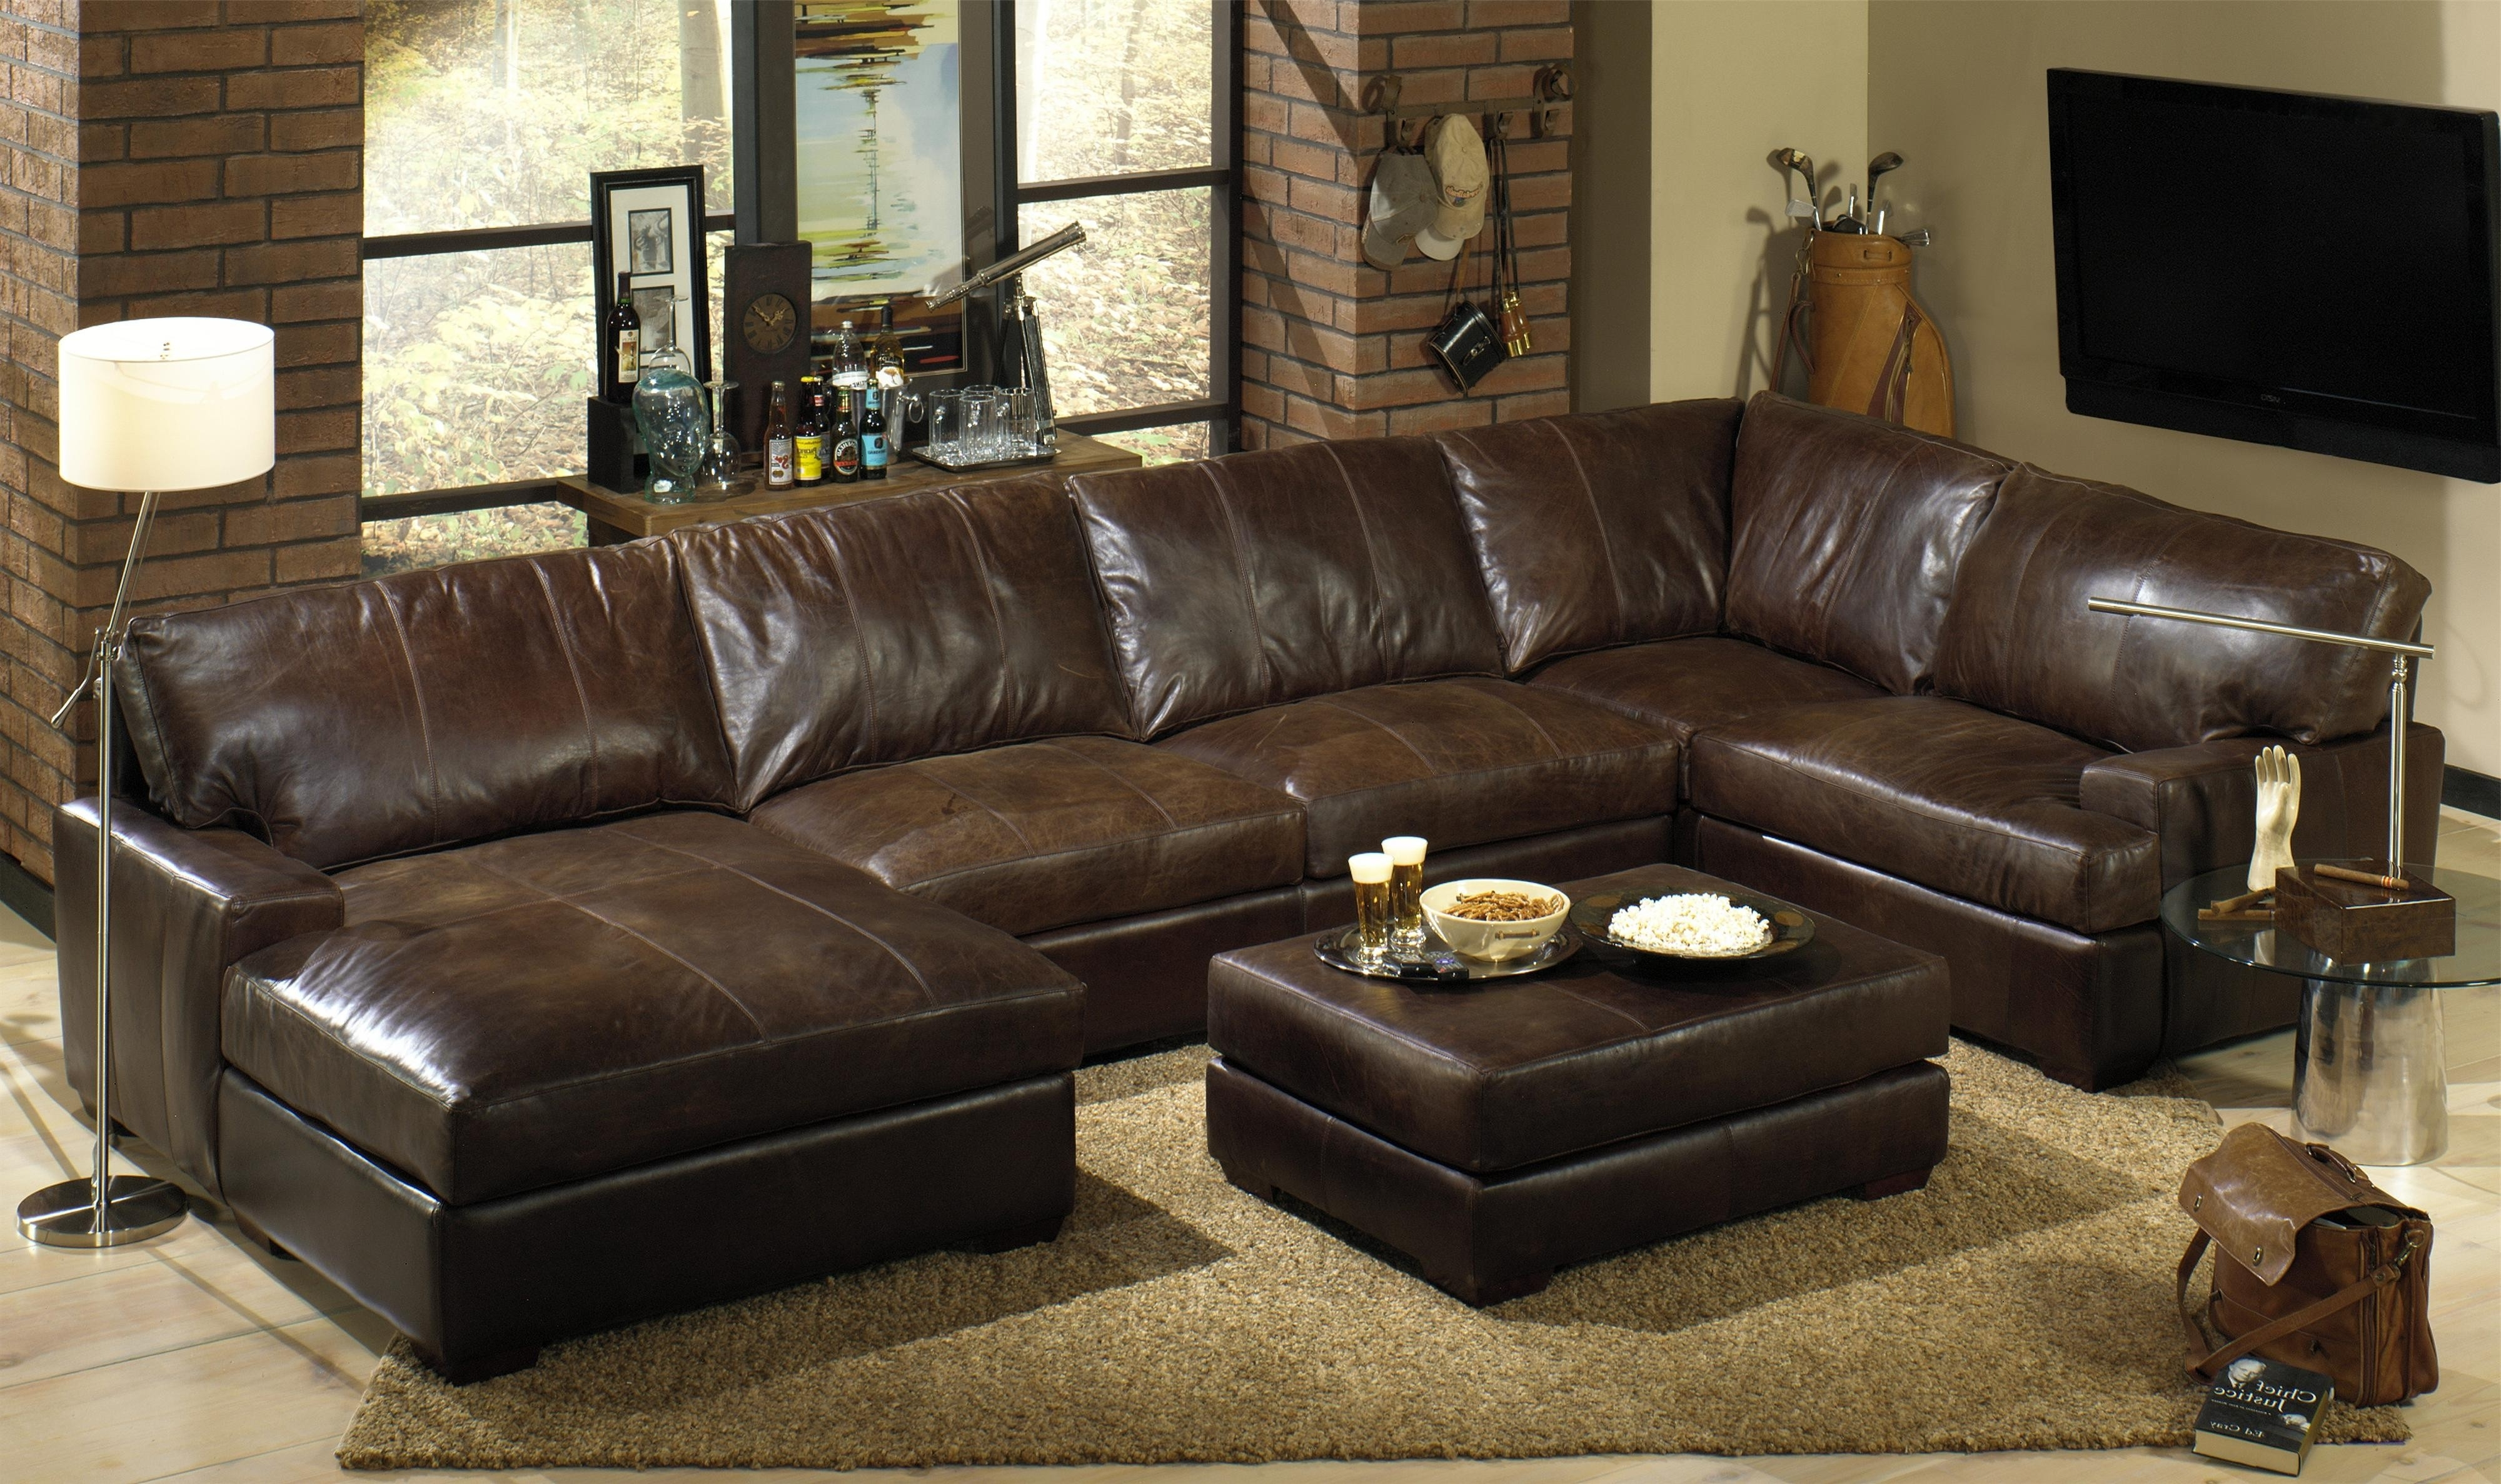 Leather Sectional Sofa Birmingham Al (View 8 of 15)